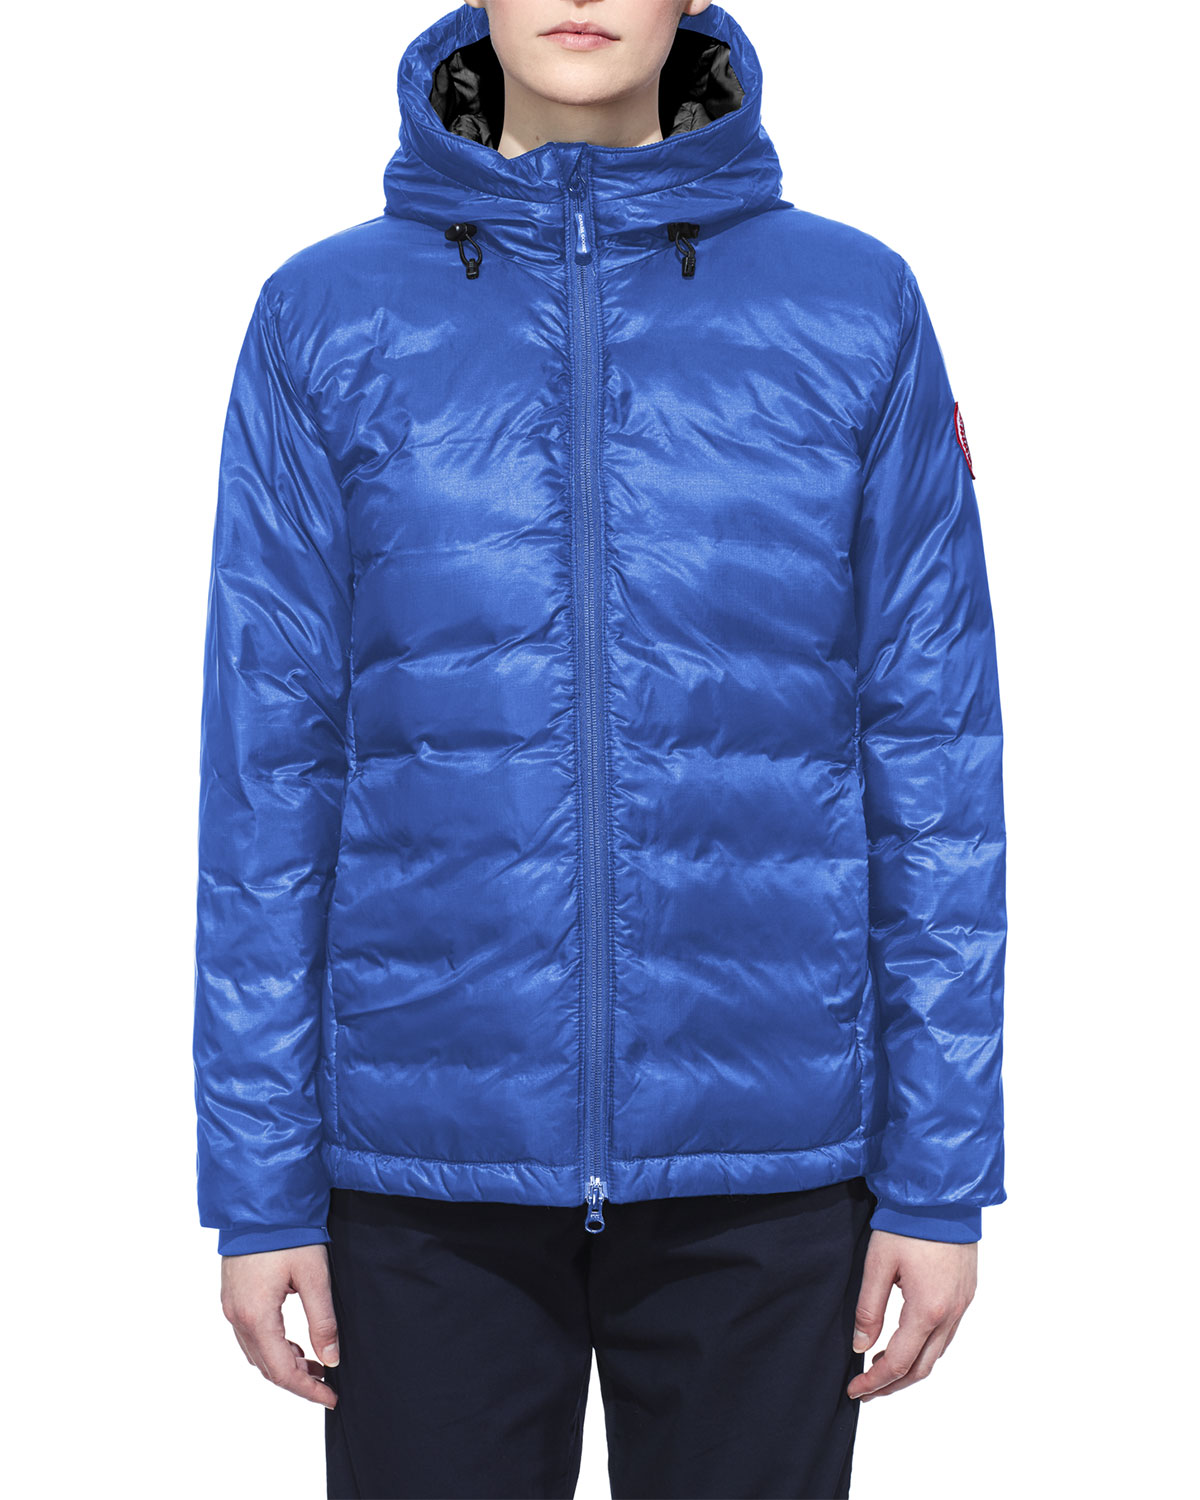 7c288014f82 Camp Hooded Packable Puffer Jacket, Royal Blue